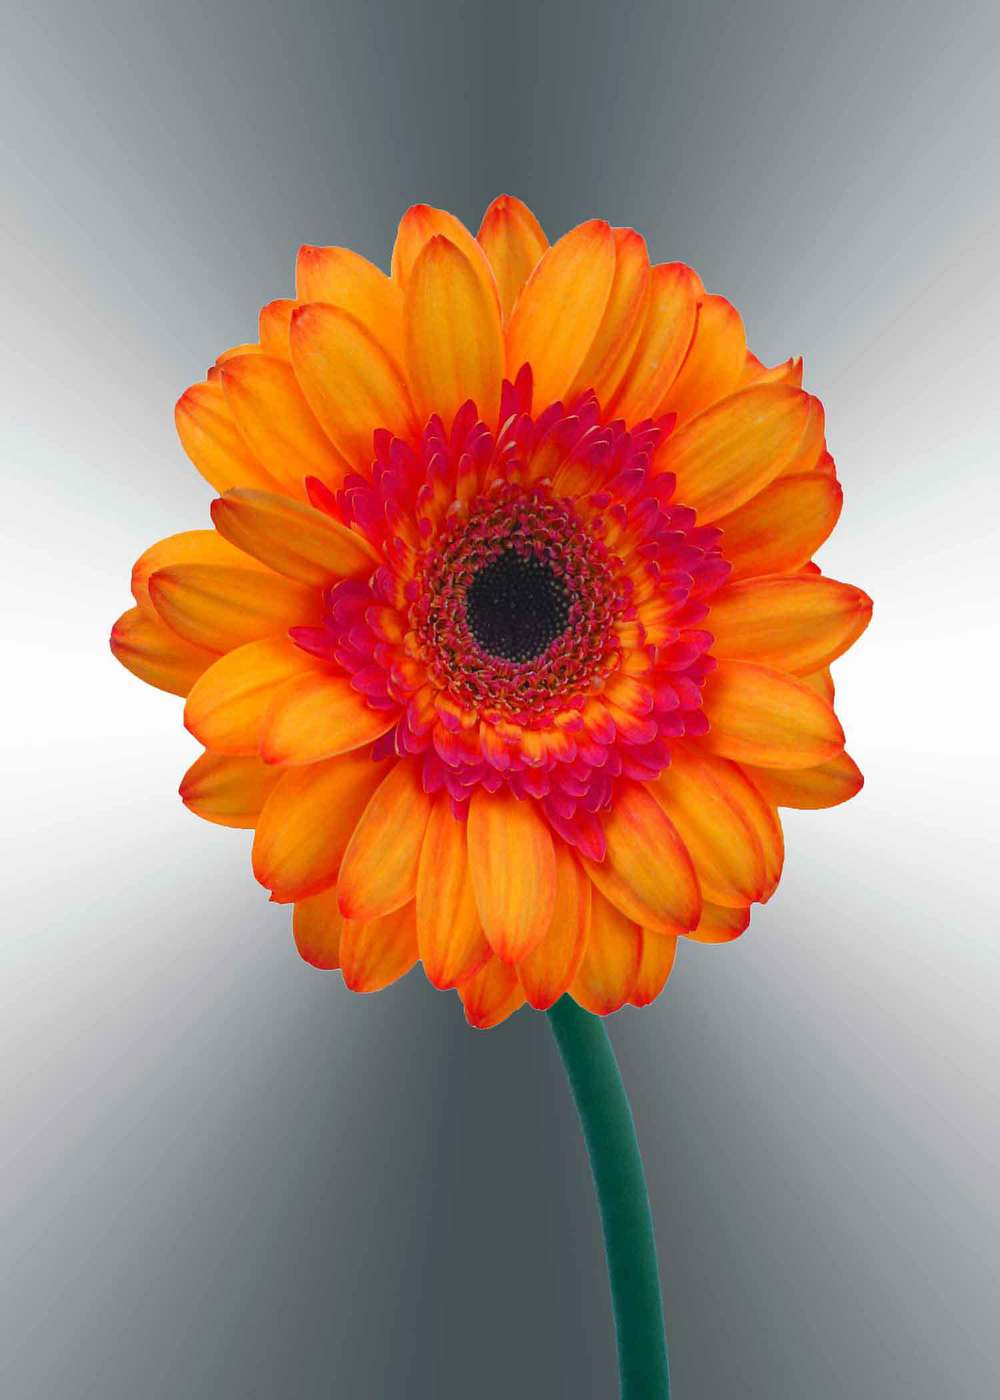 orange-gerger-daisy-5x7-(22-of-236)-Edit-2-copy-2.jpg